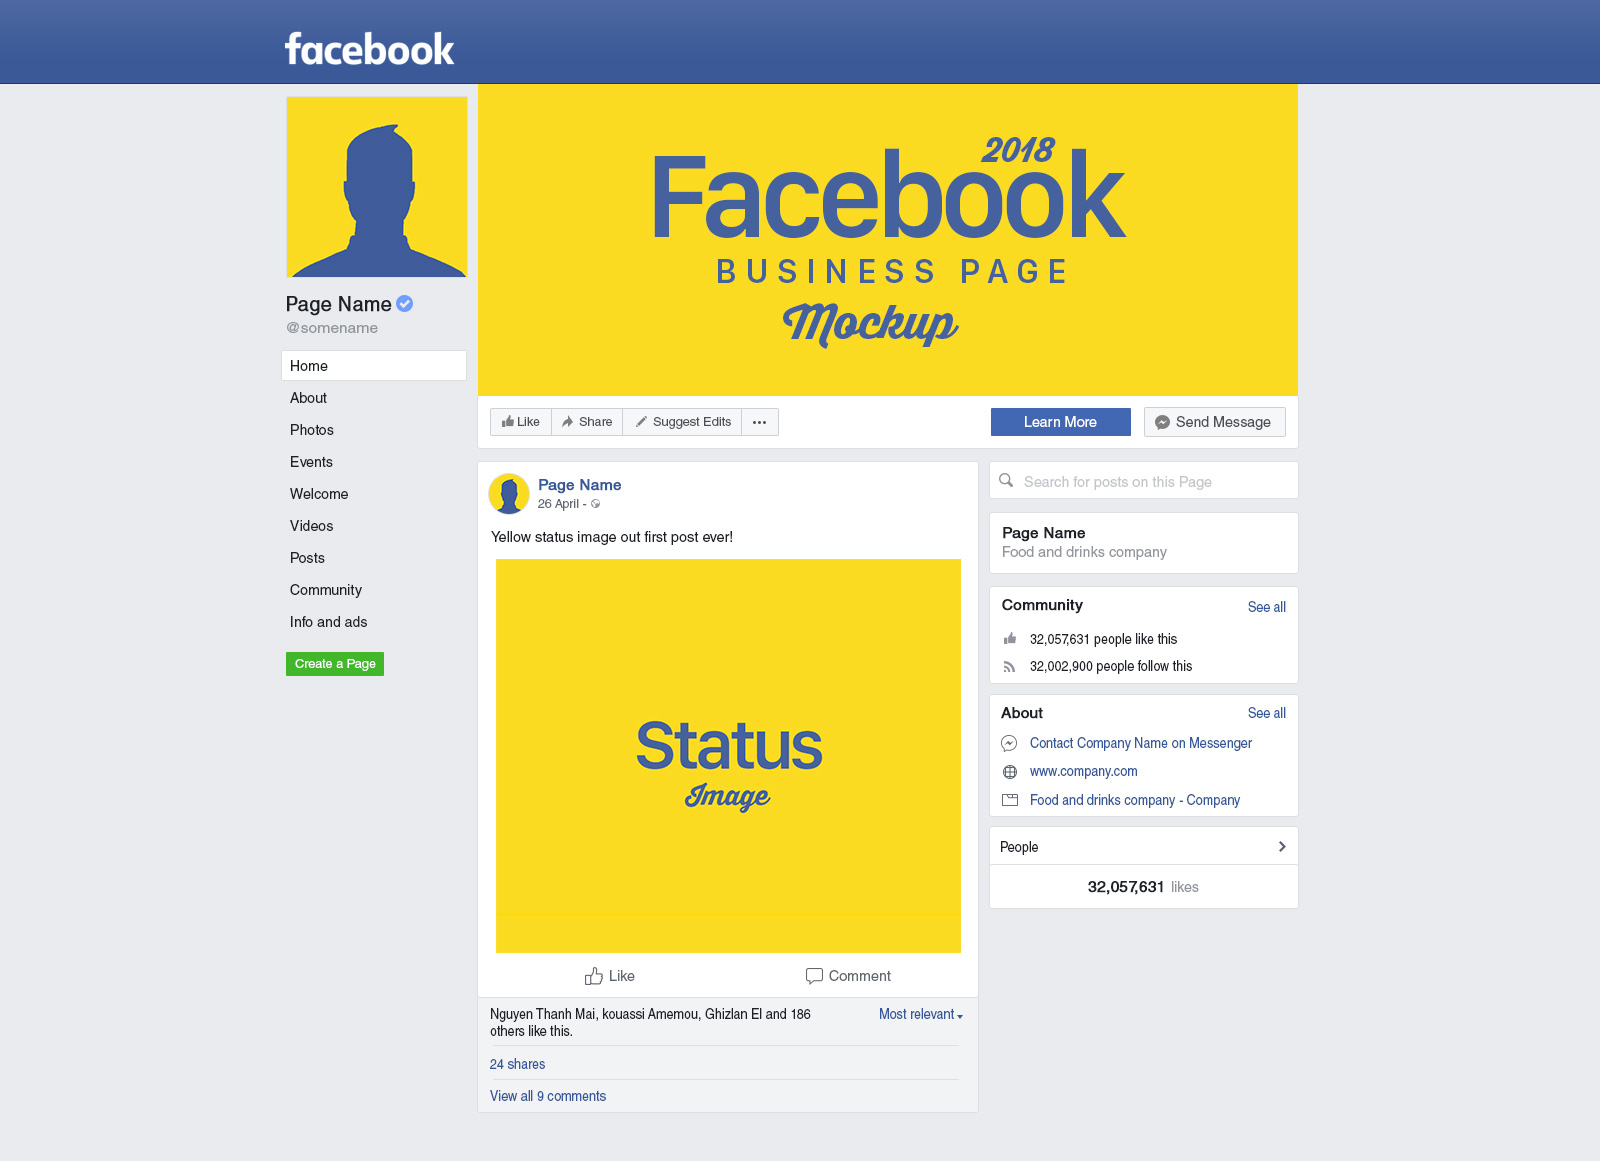 New-Facebook-Business-Page-Social-Media-Mockup-PSD